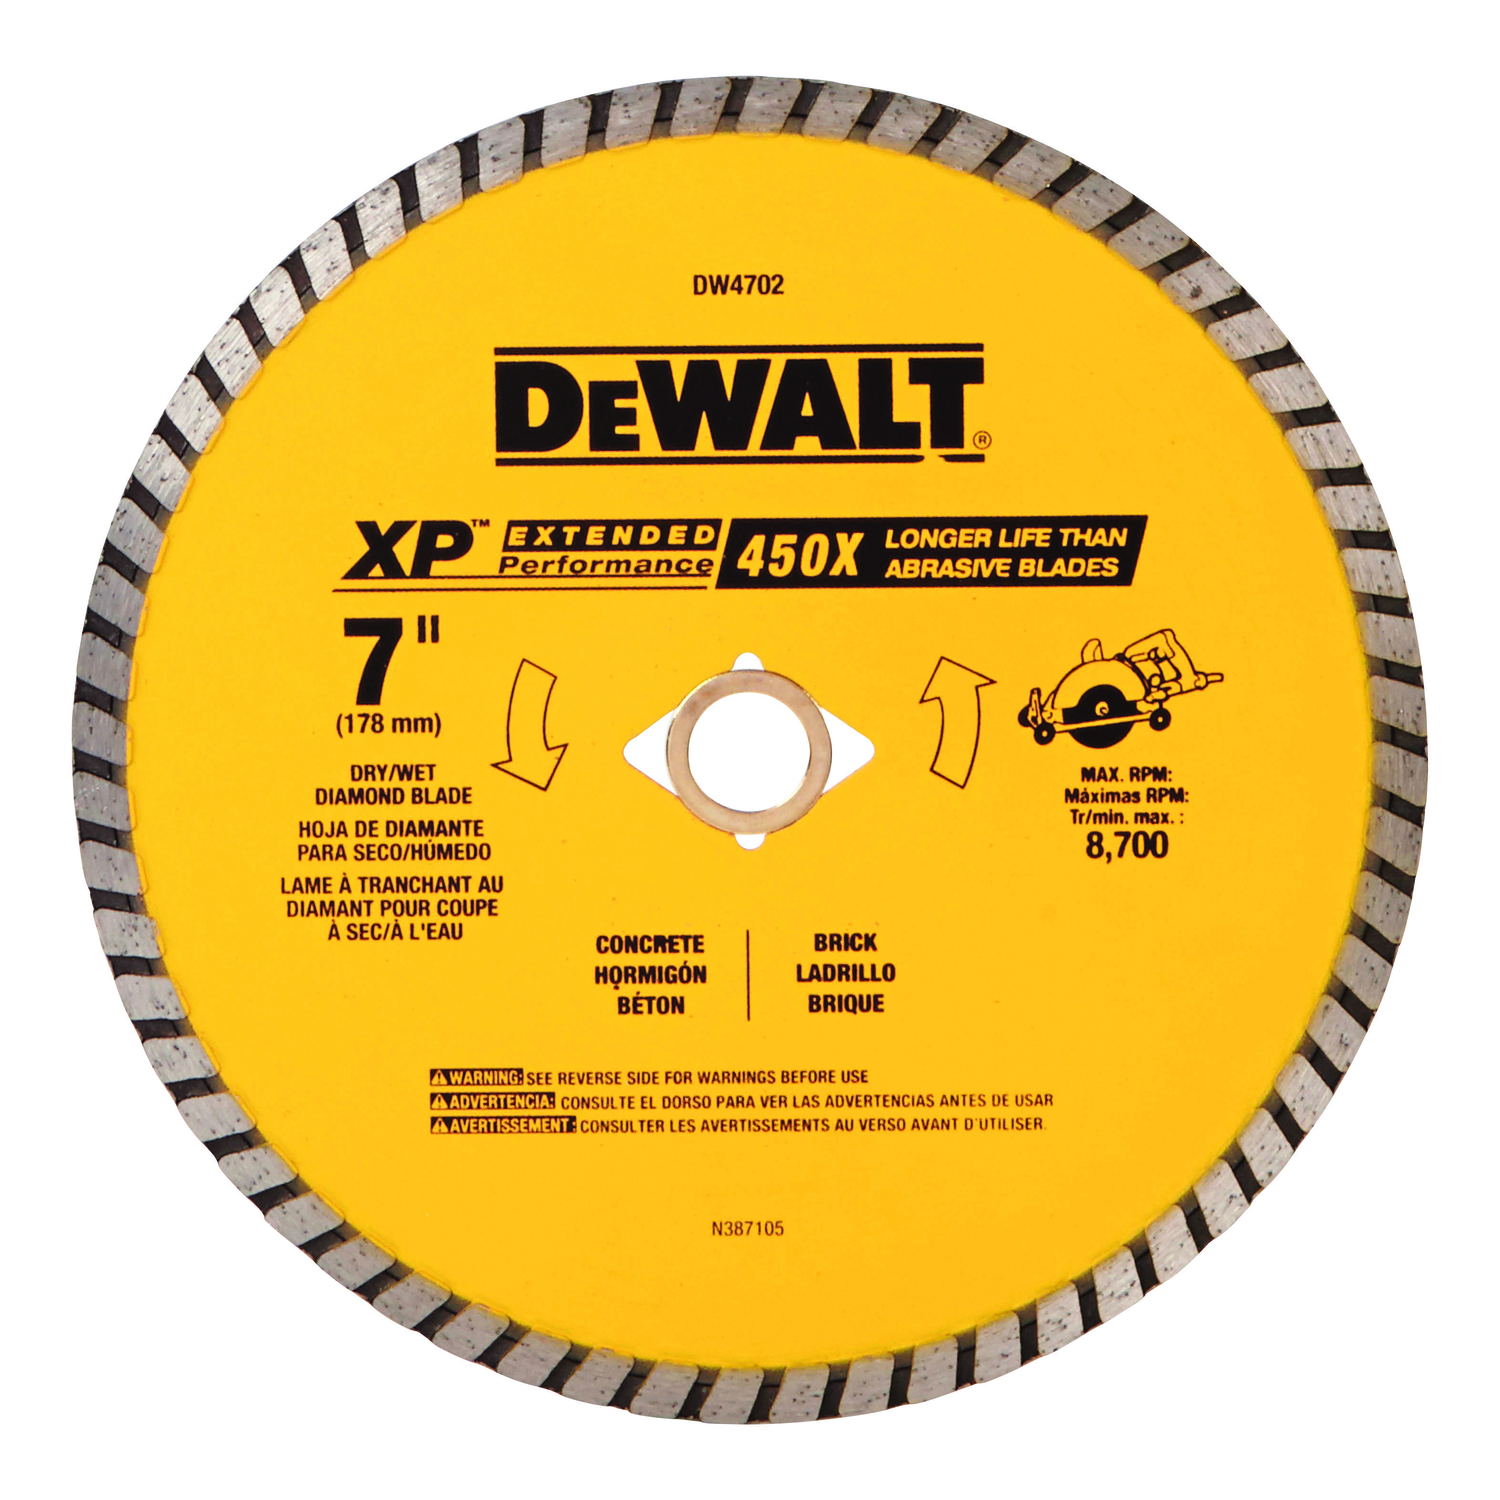 DeWalt  0.06 in.  7  XP Extended Performance  Masonry Blade  1 pk Diamond  5/8